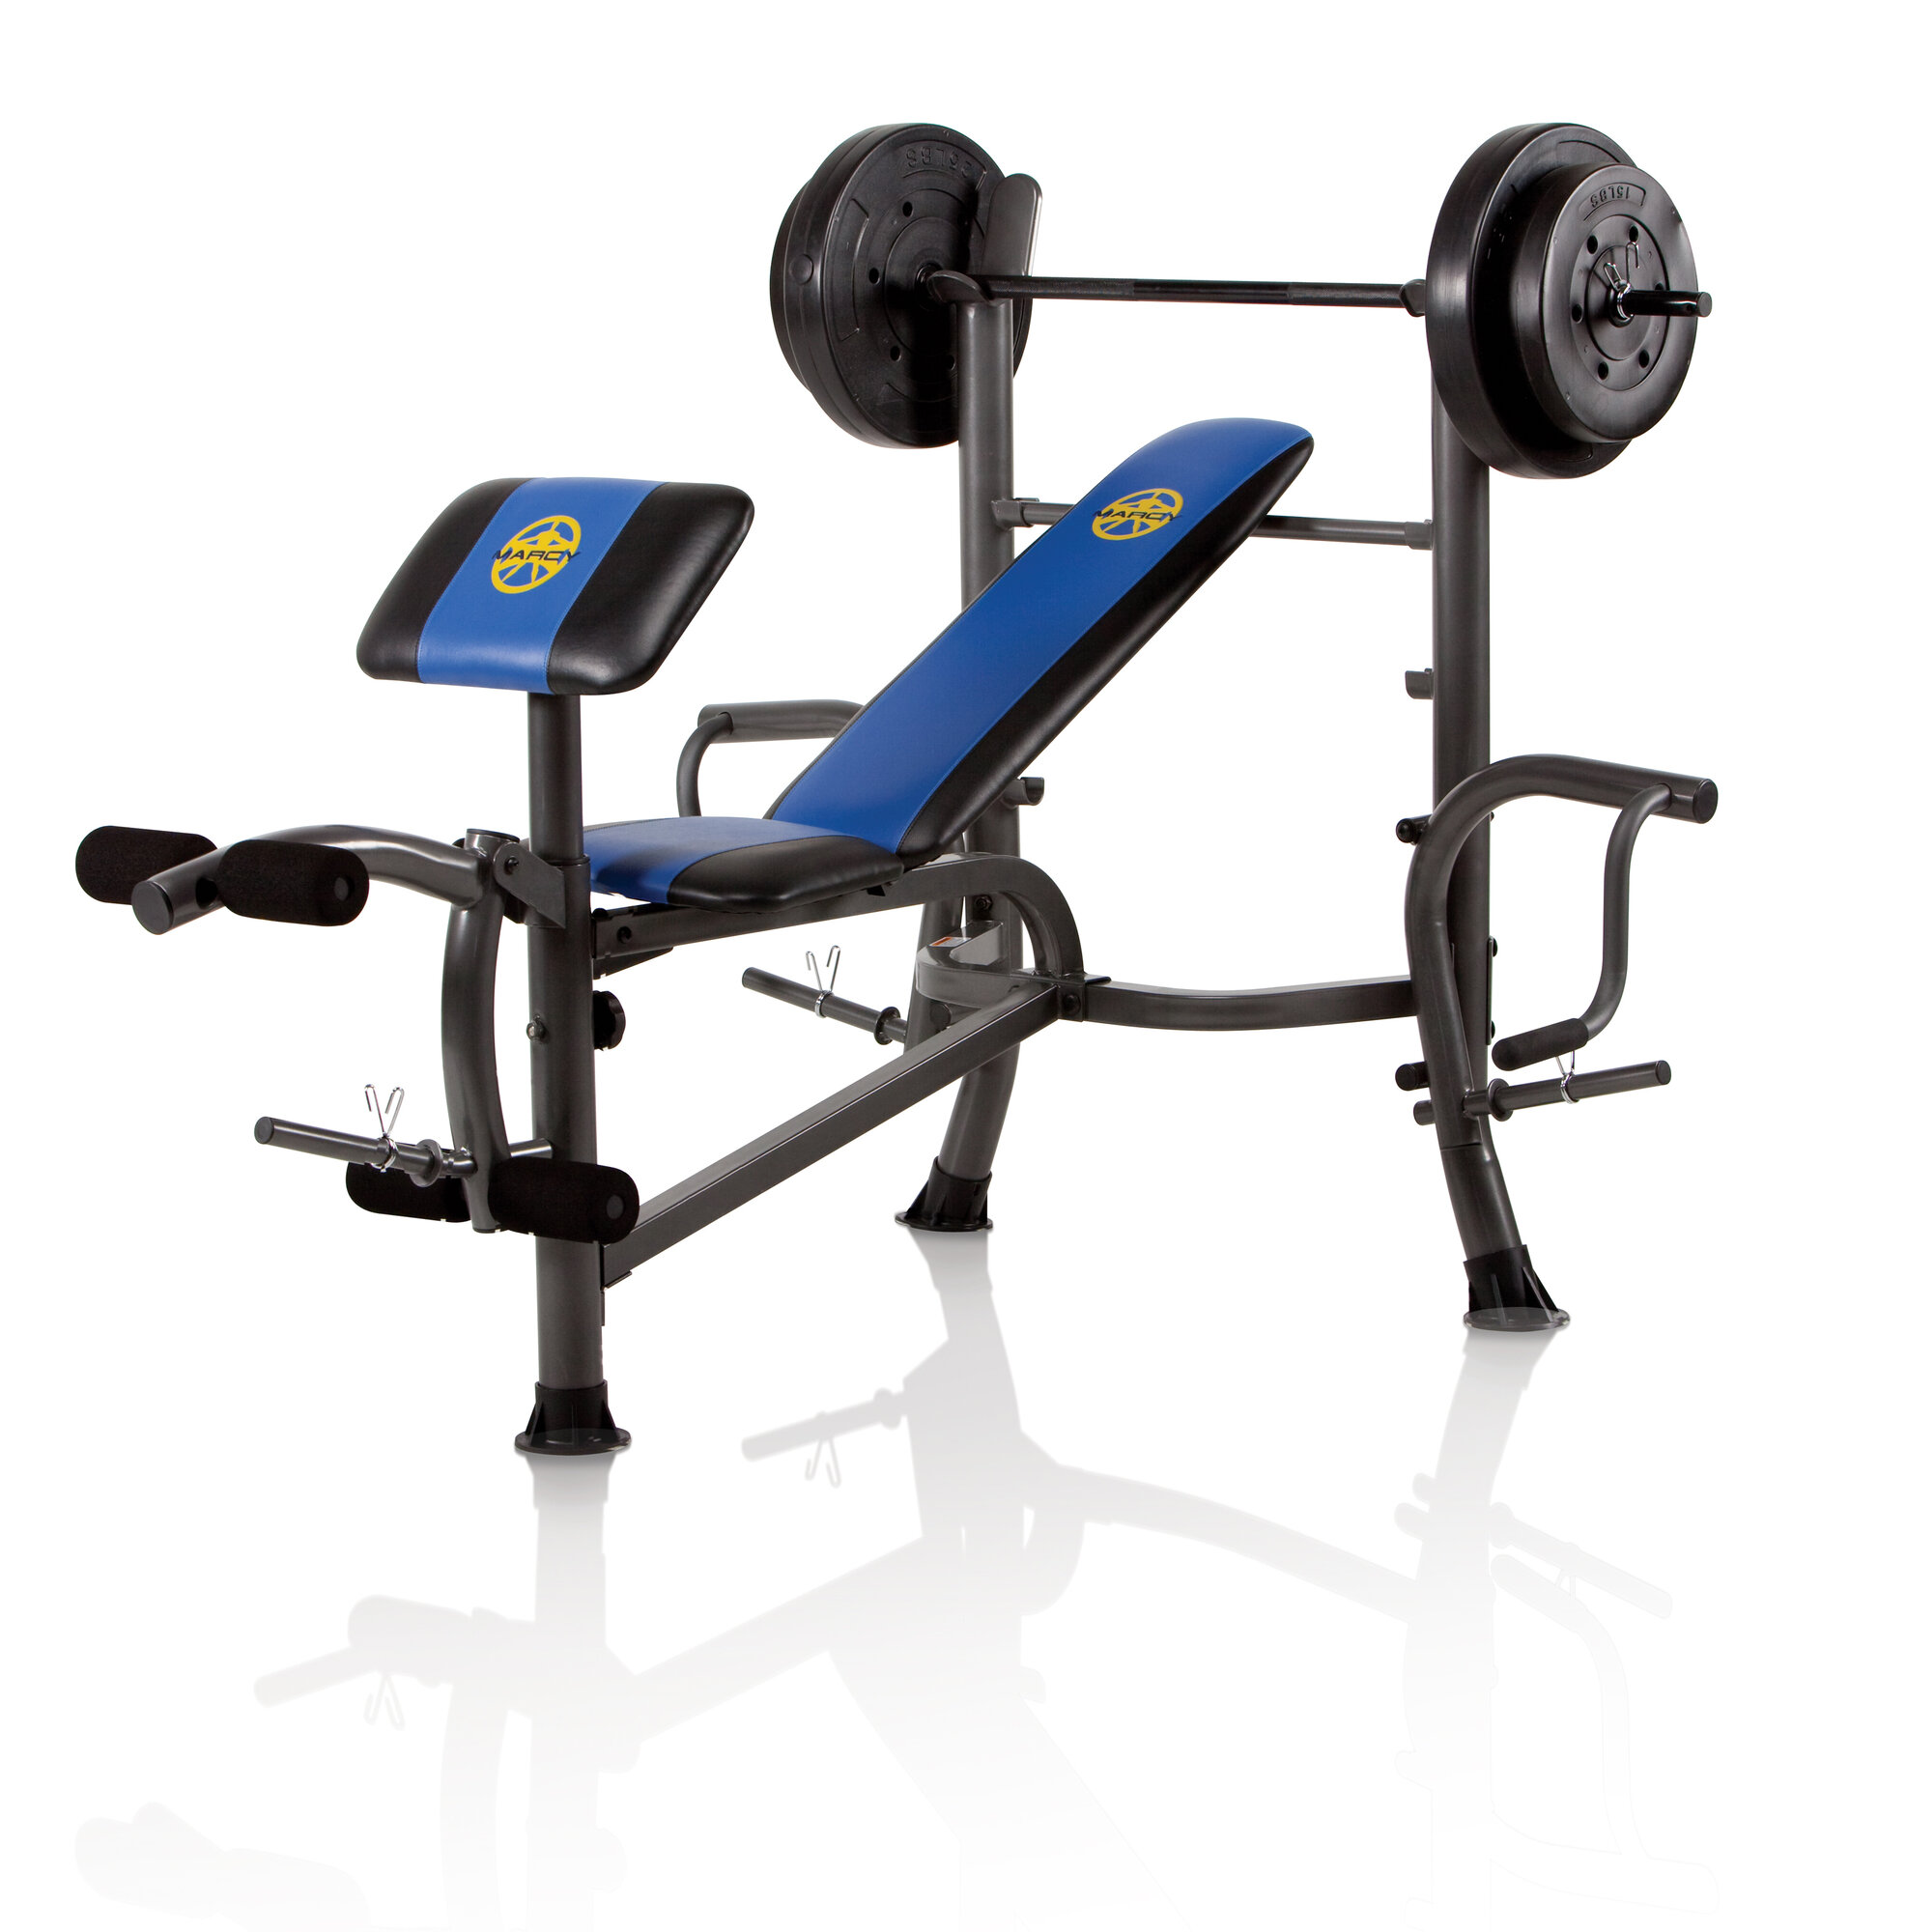 Marcy Standard Weight Adjustable Olympic Bench With 80 Lbs: bench weights